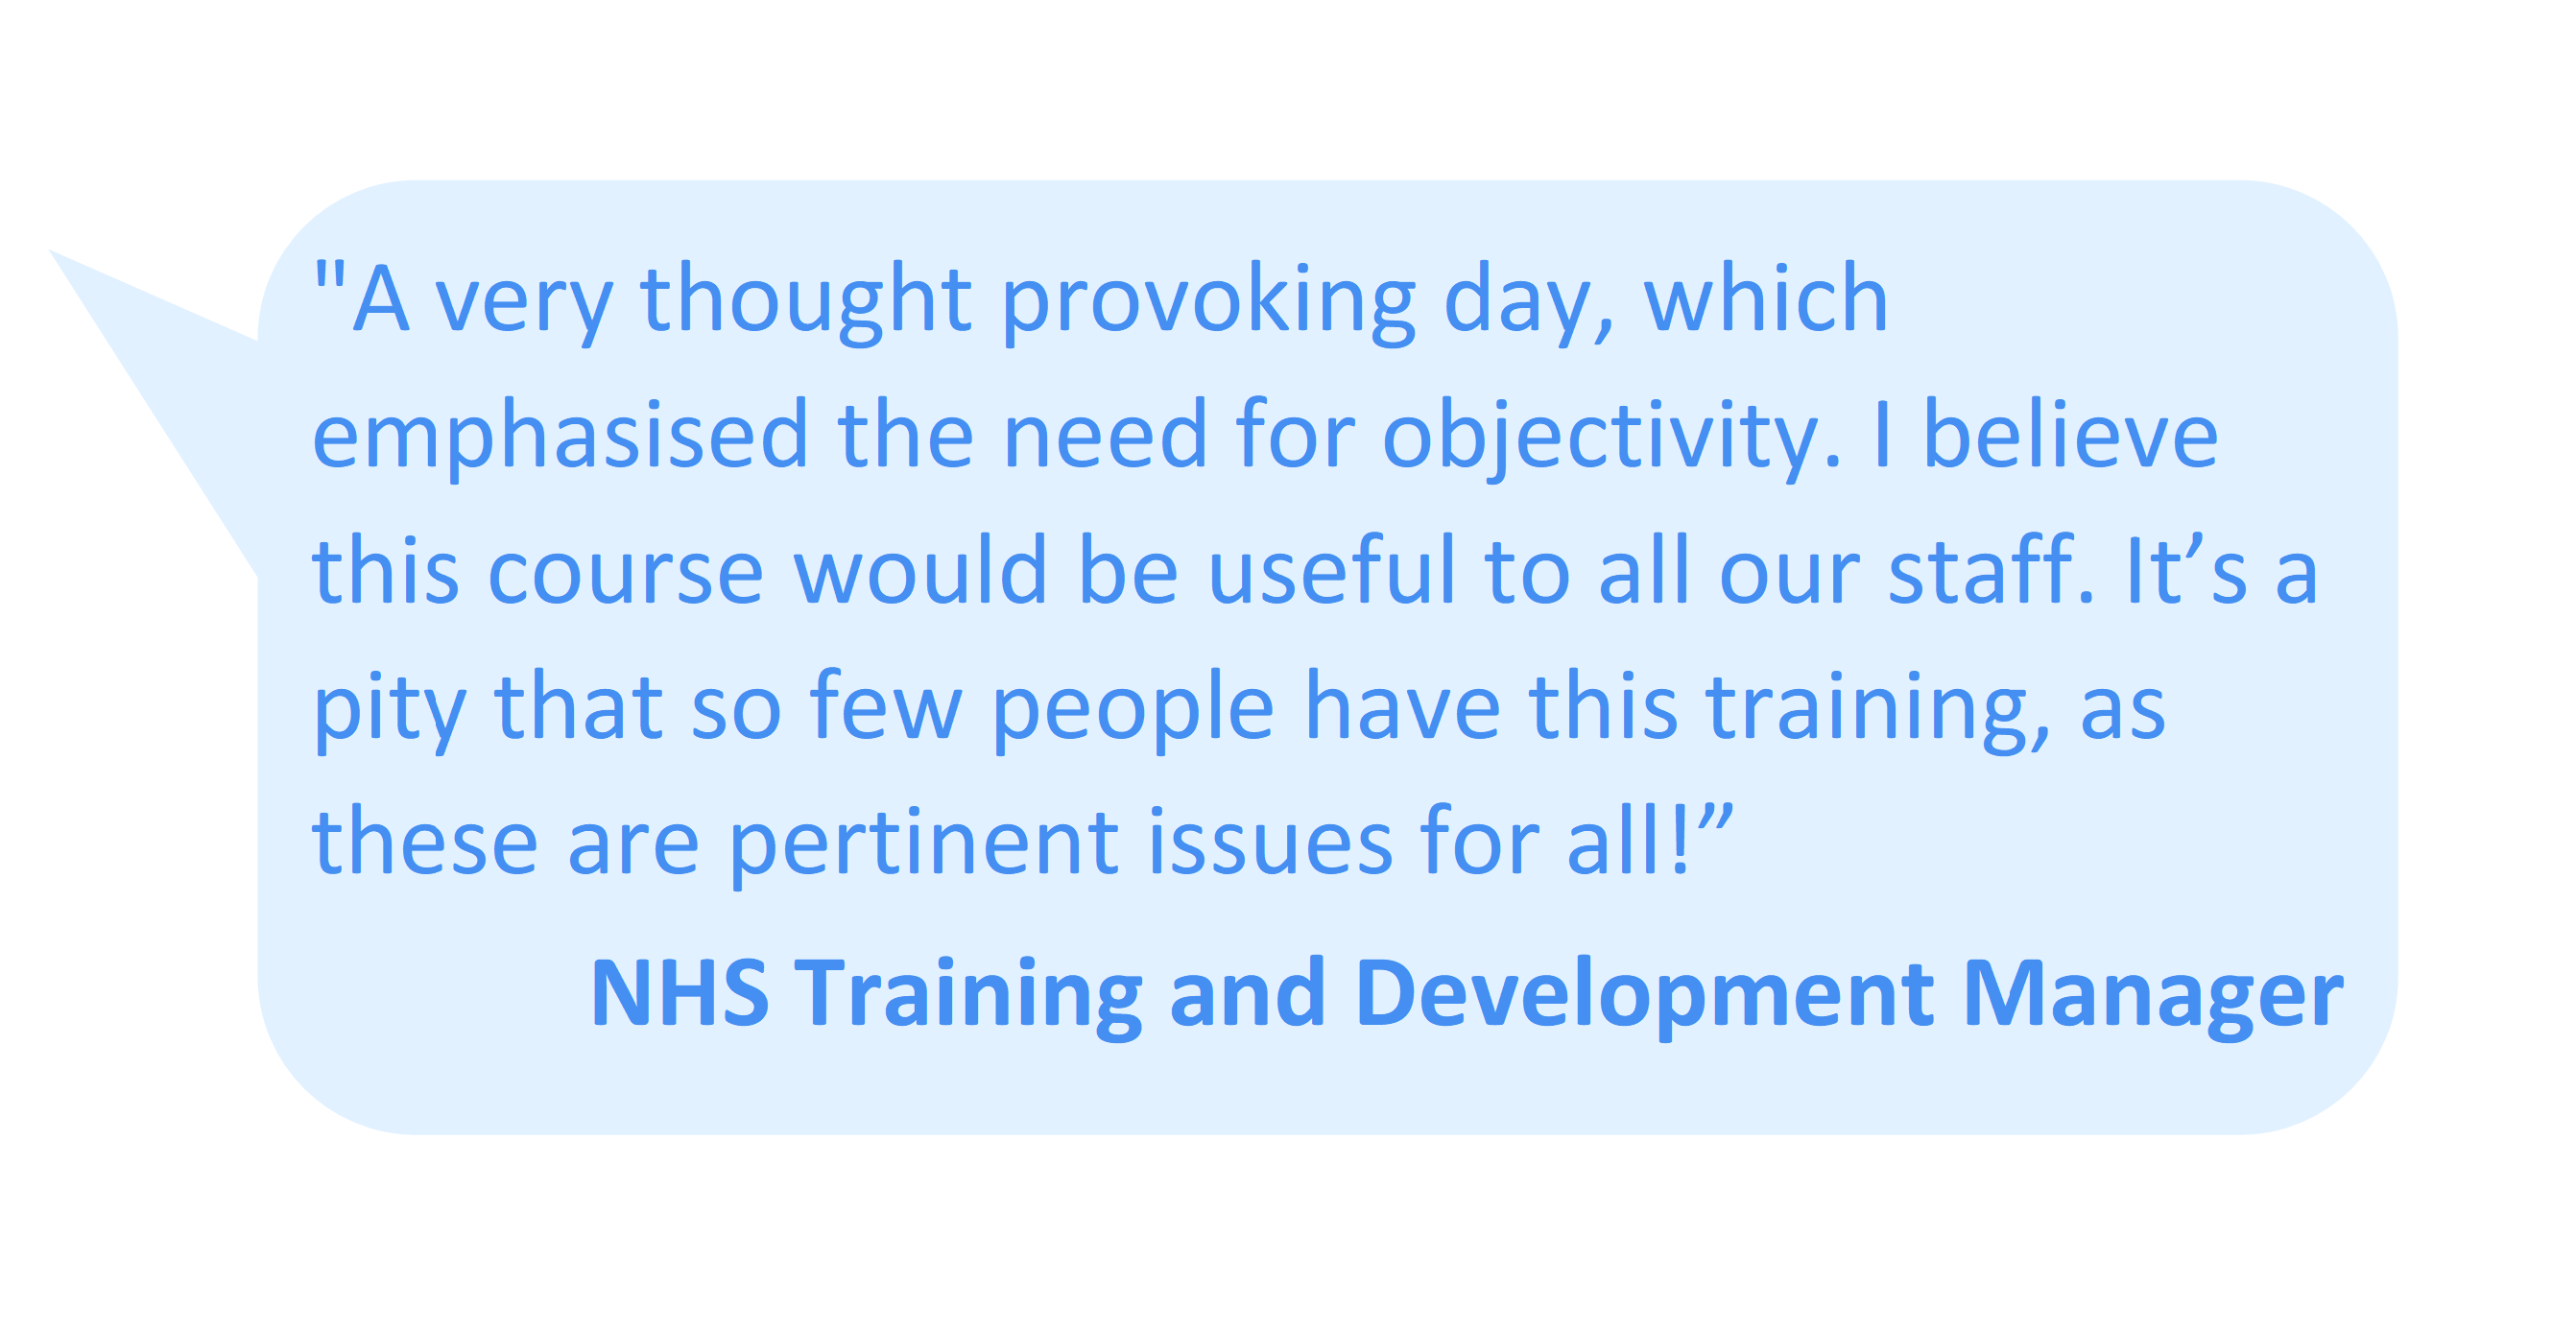 """A very thought provoking day, which emphasised the need for objectivity. I believe this course would be useful to all our staff. It's a pity that so few people have this training, as these are pertinent issues for all!"" NHS Training and Development Manager"